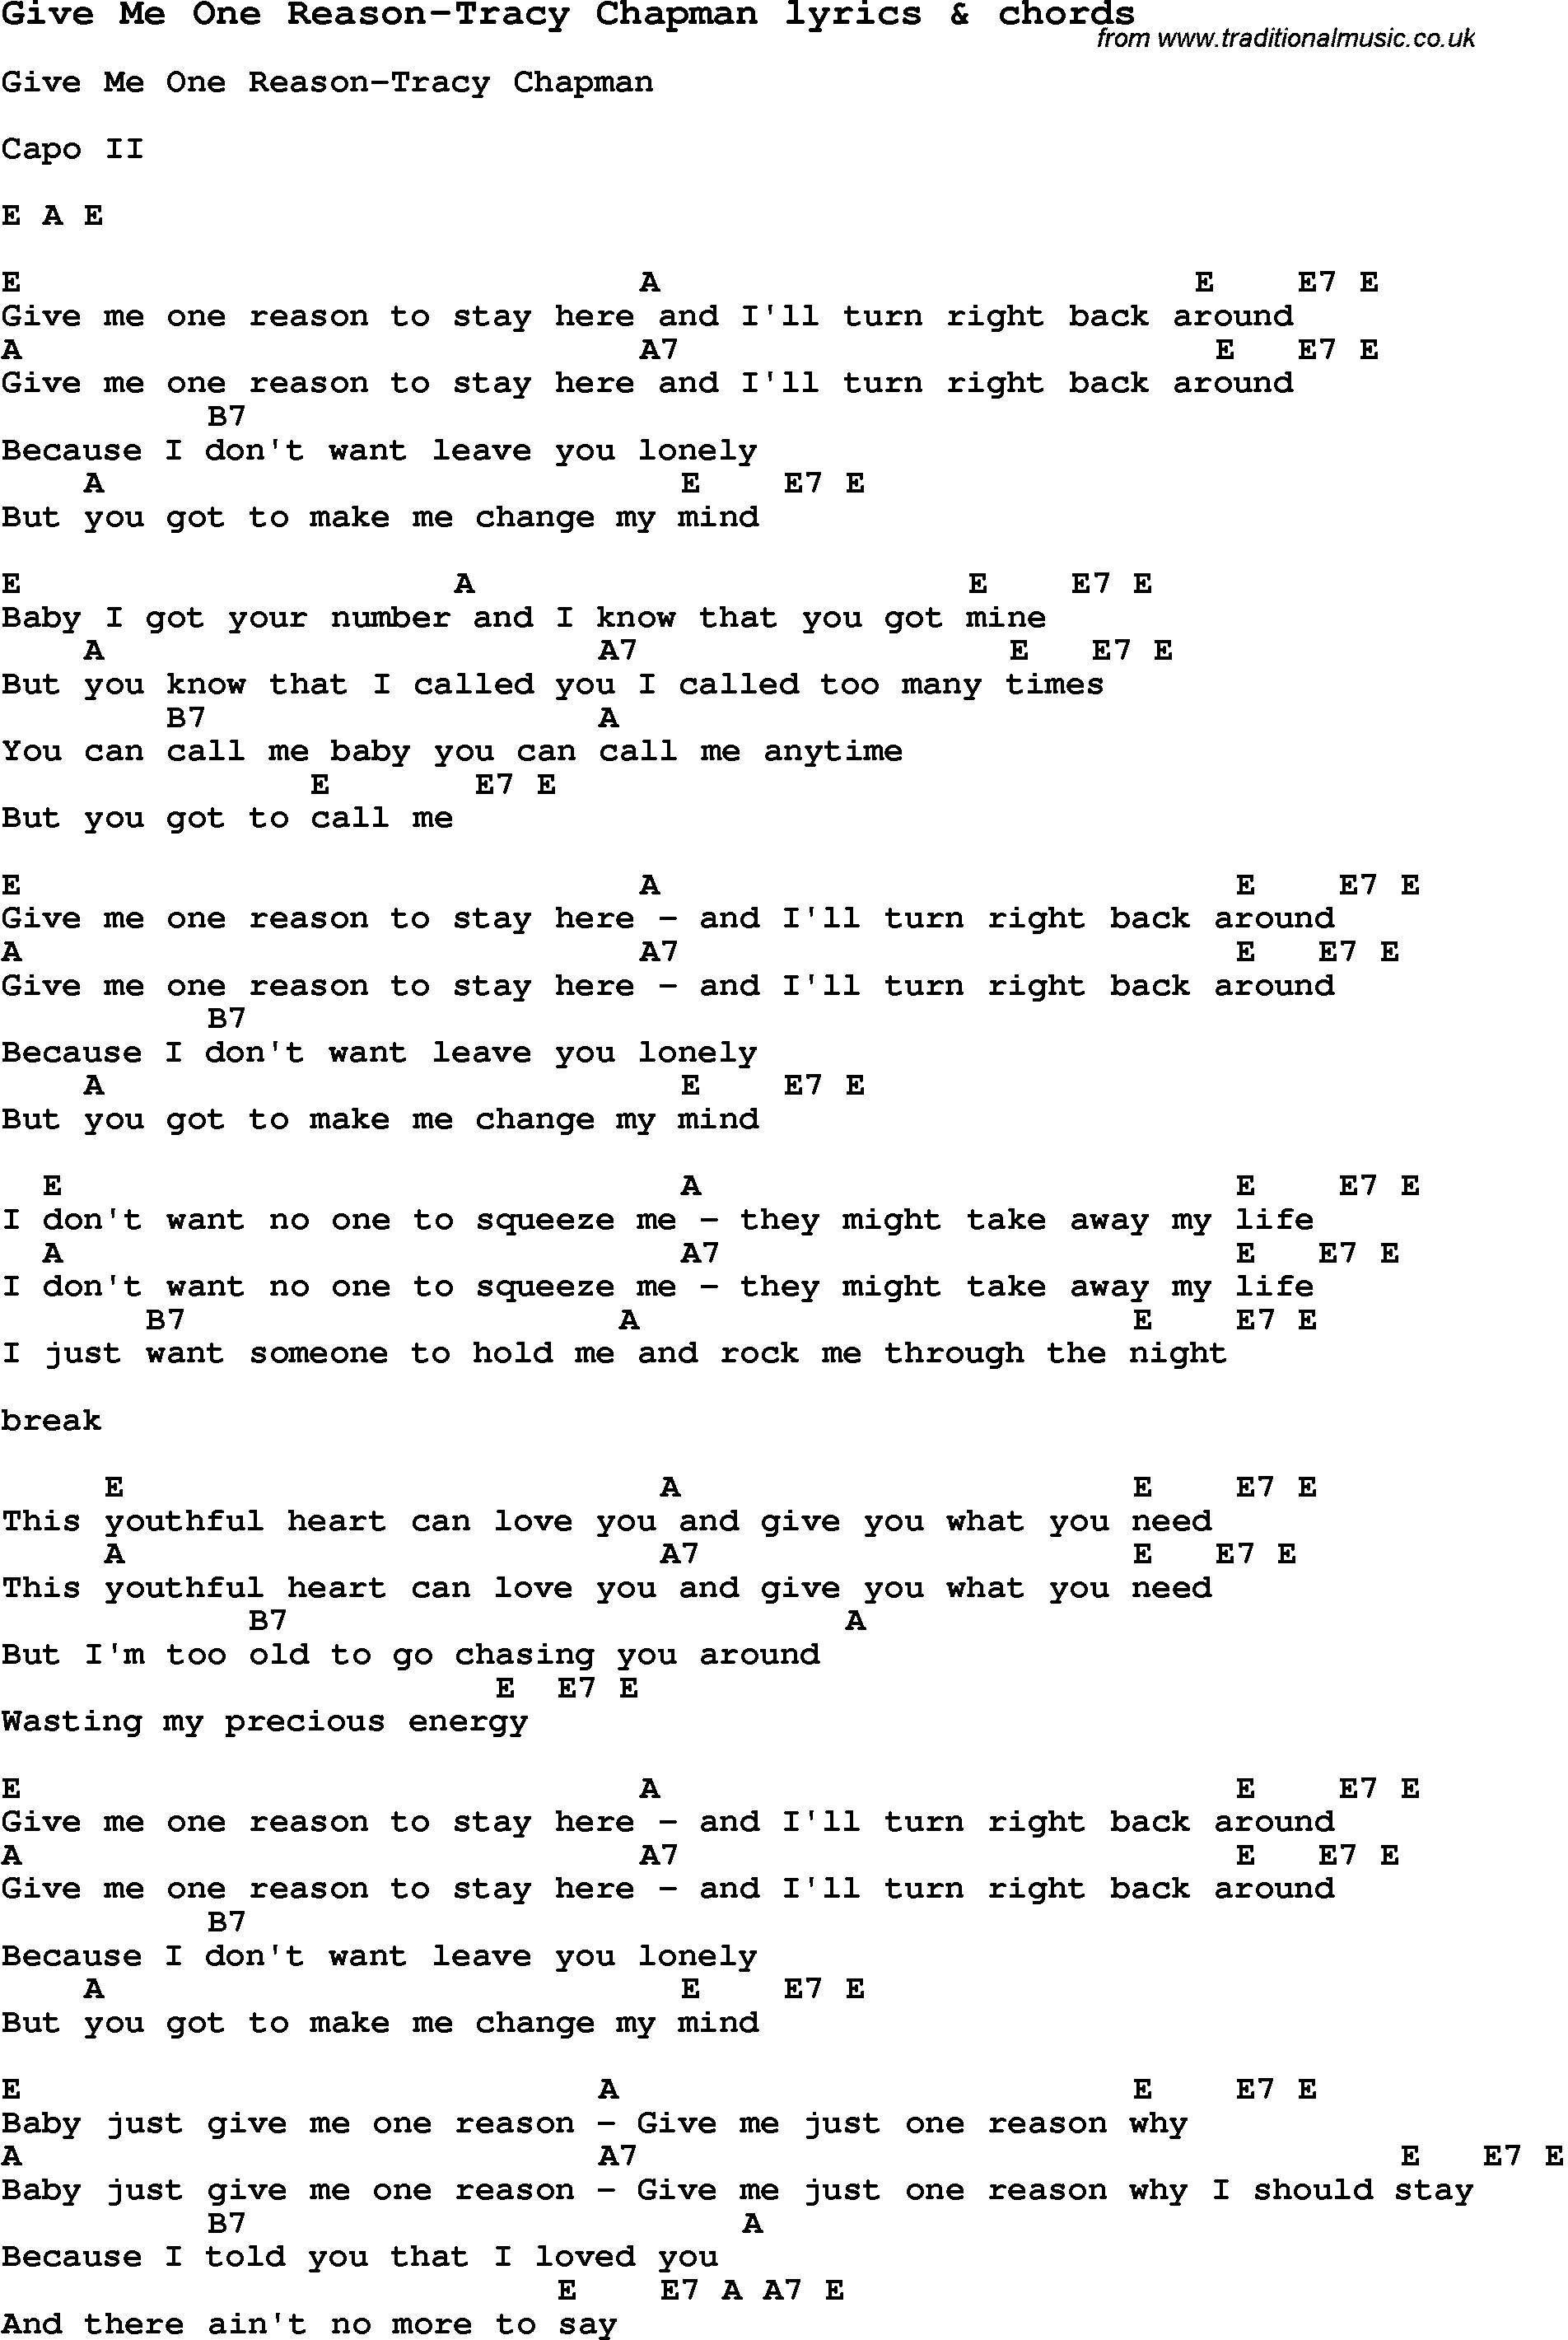 Love Song Lyrics For Give Me One Reason Tracy Chapman With Chords